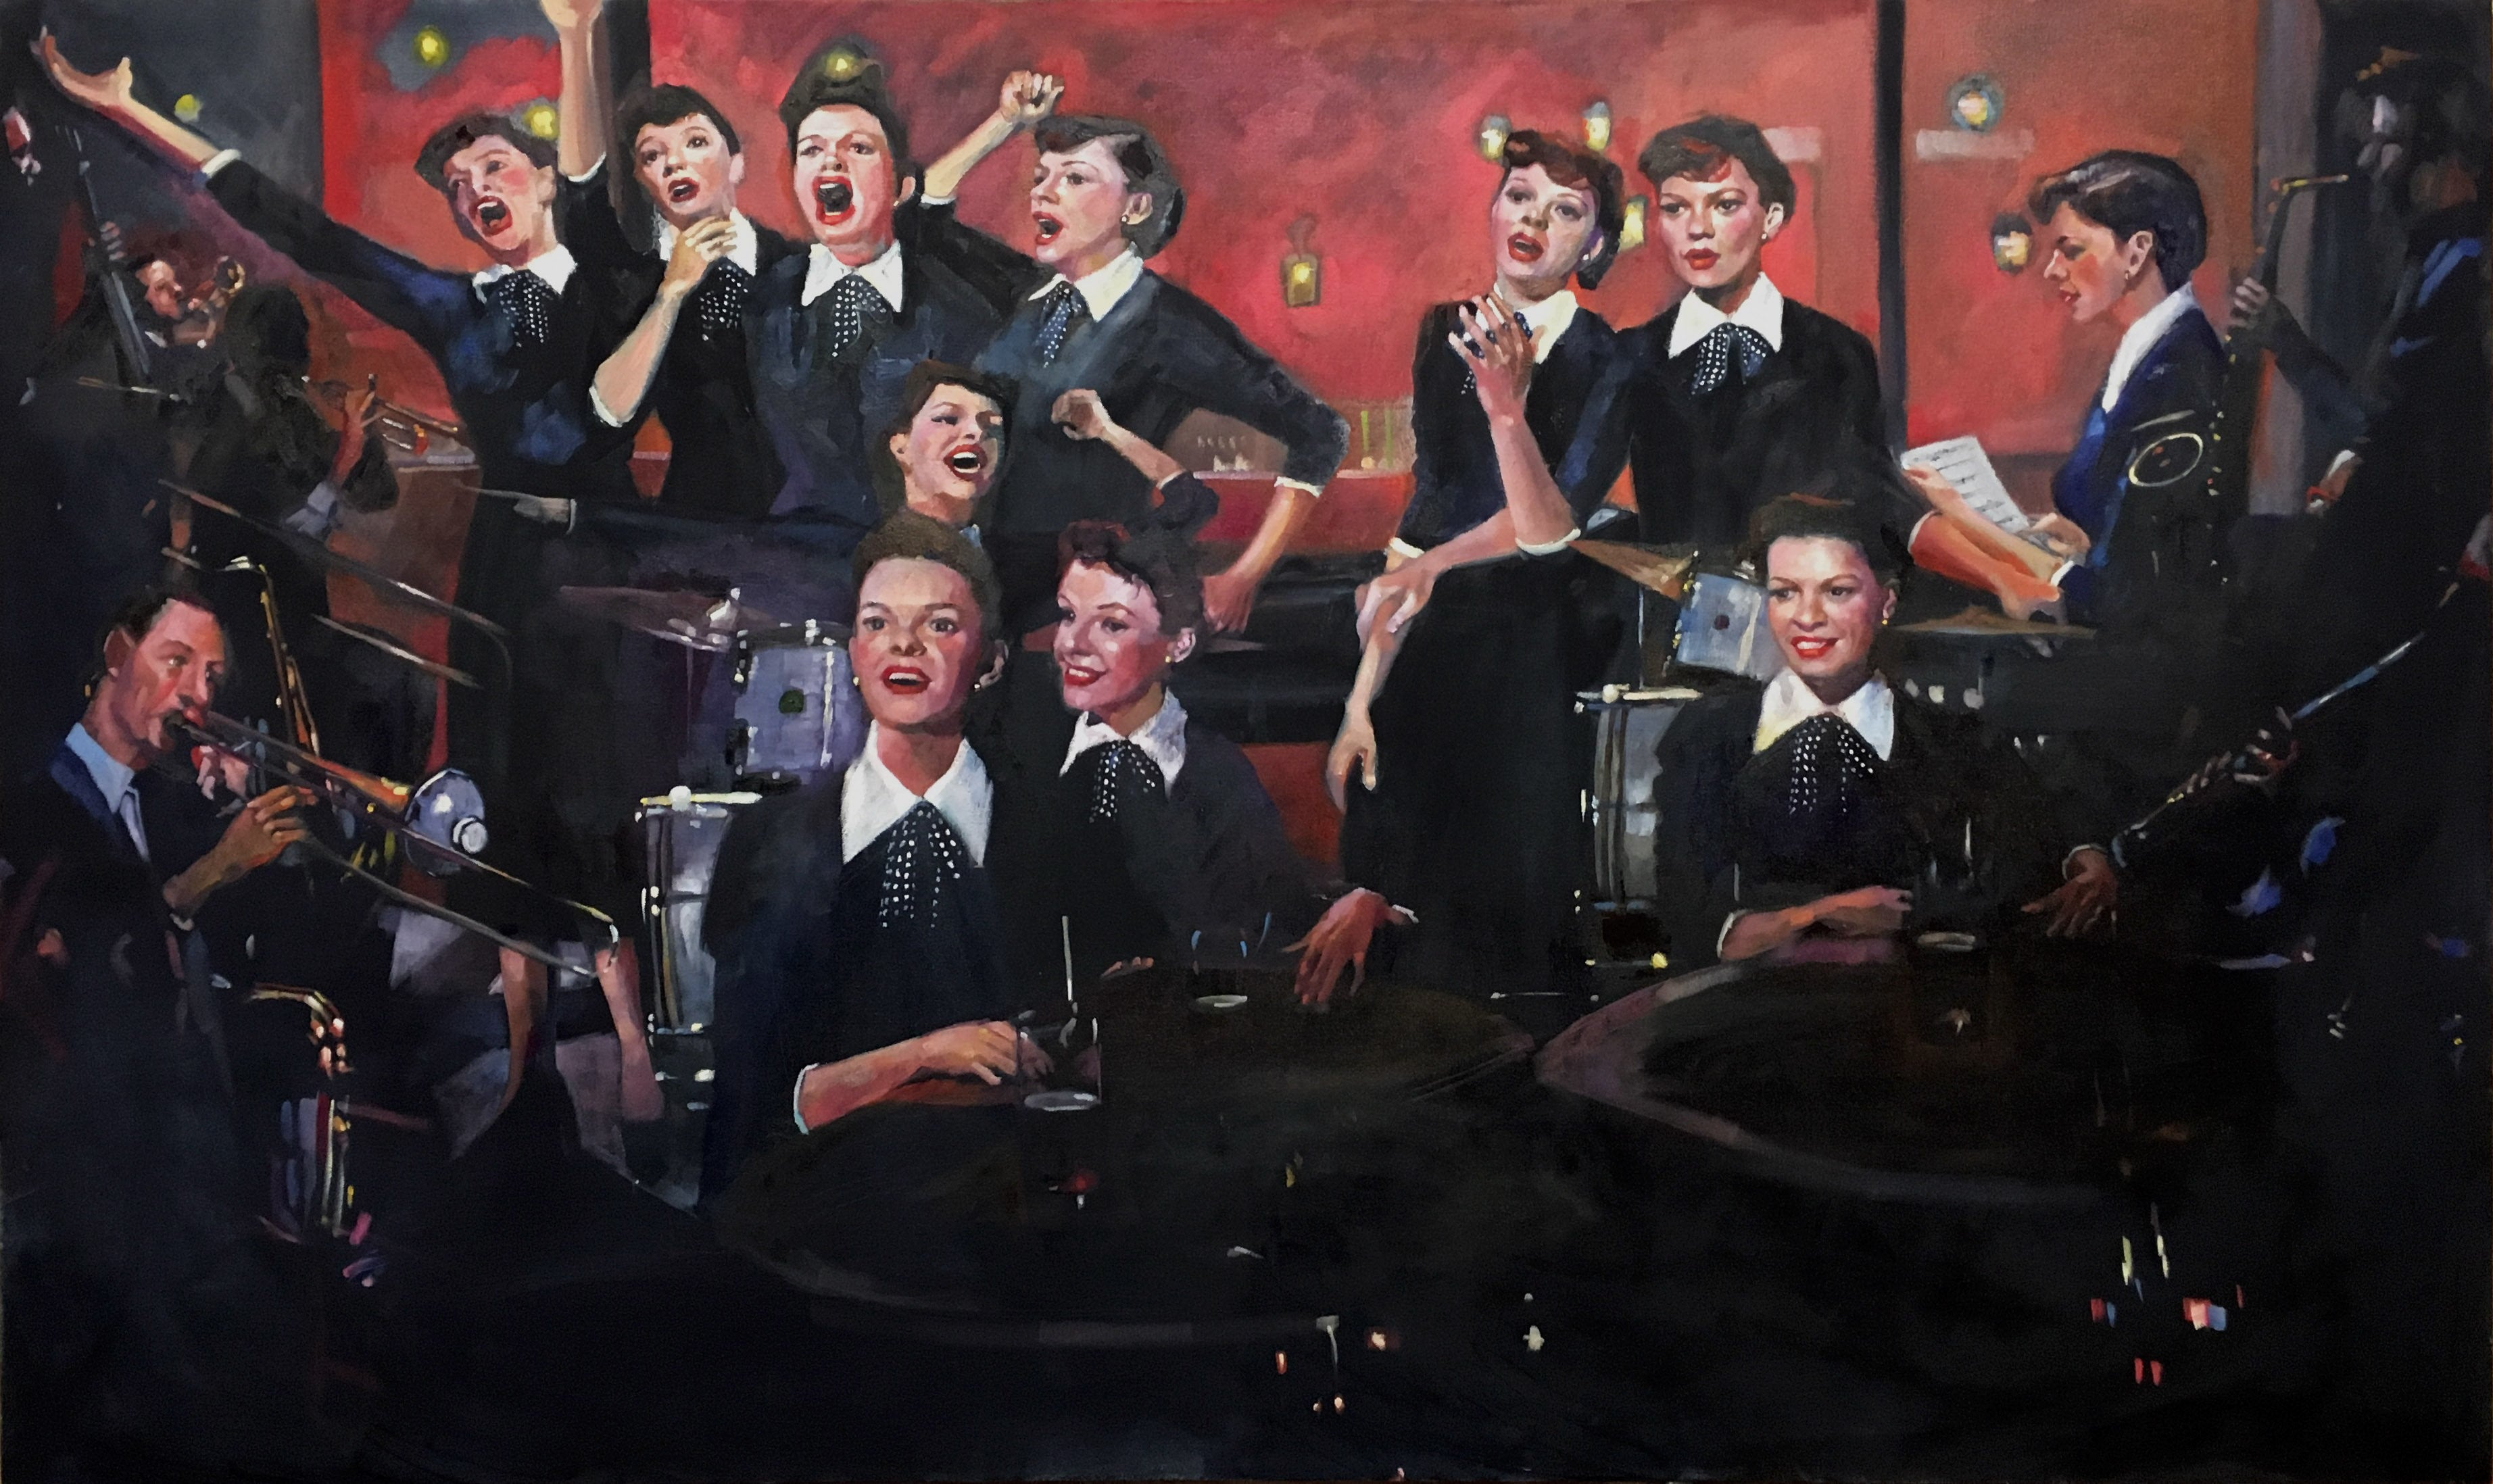 The Man That Got Away (Contemporary Oil Painting about Judy Garland)